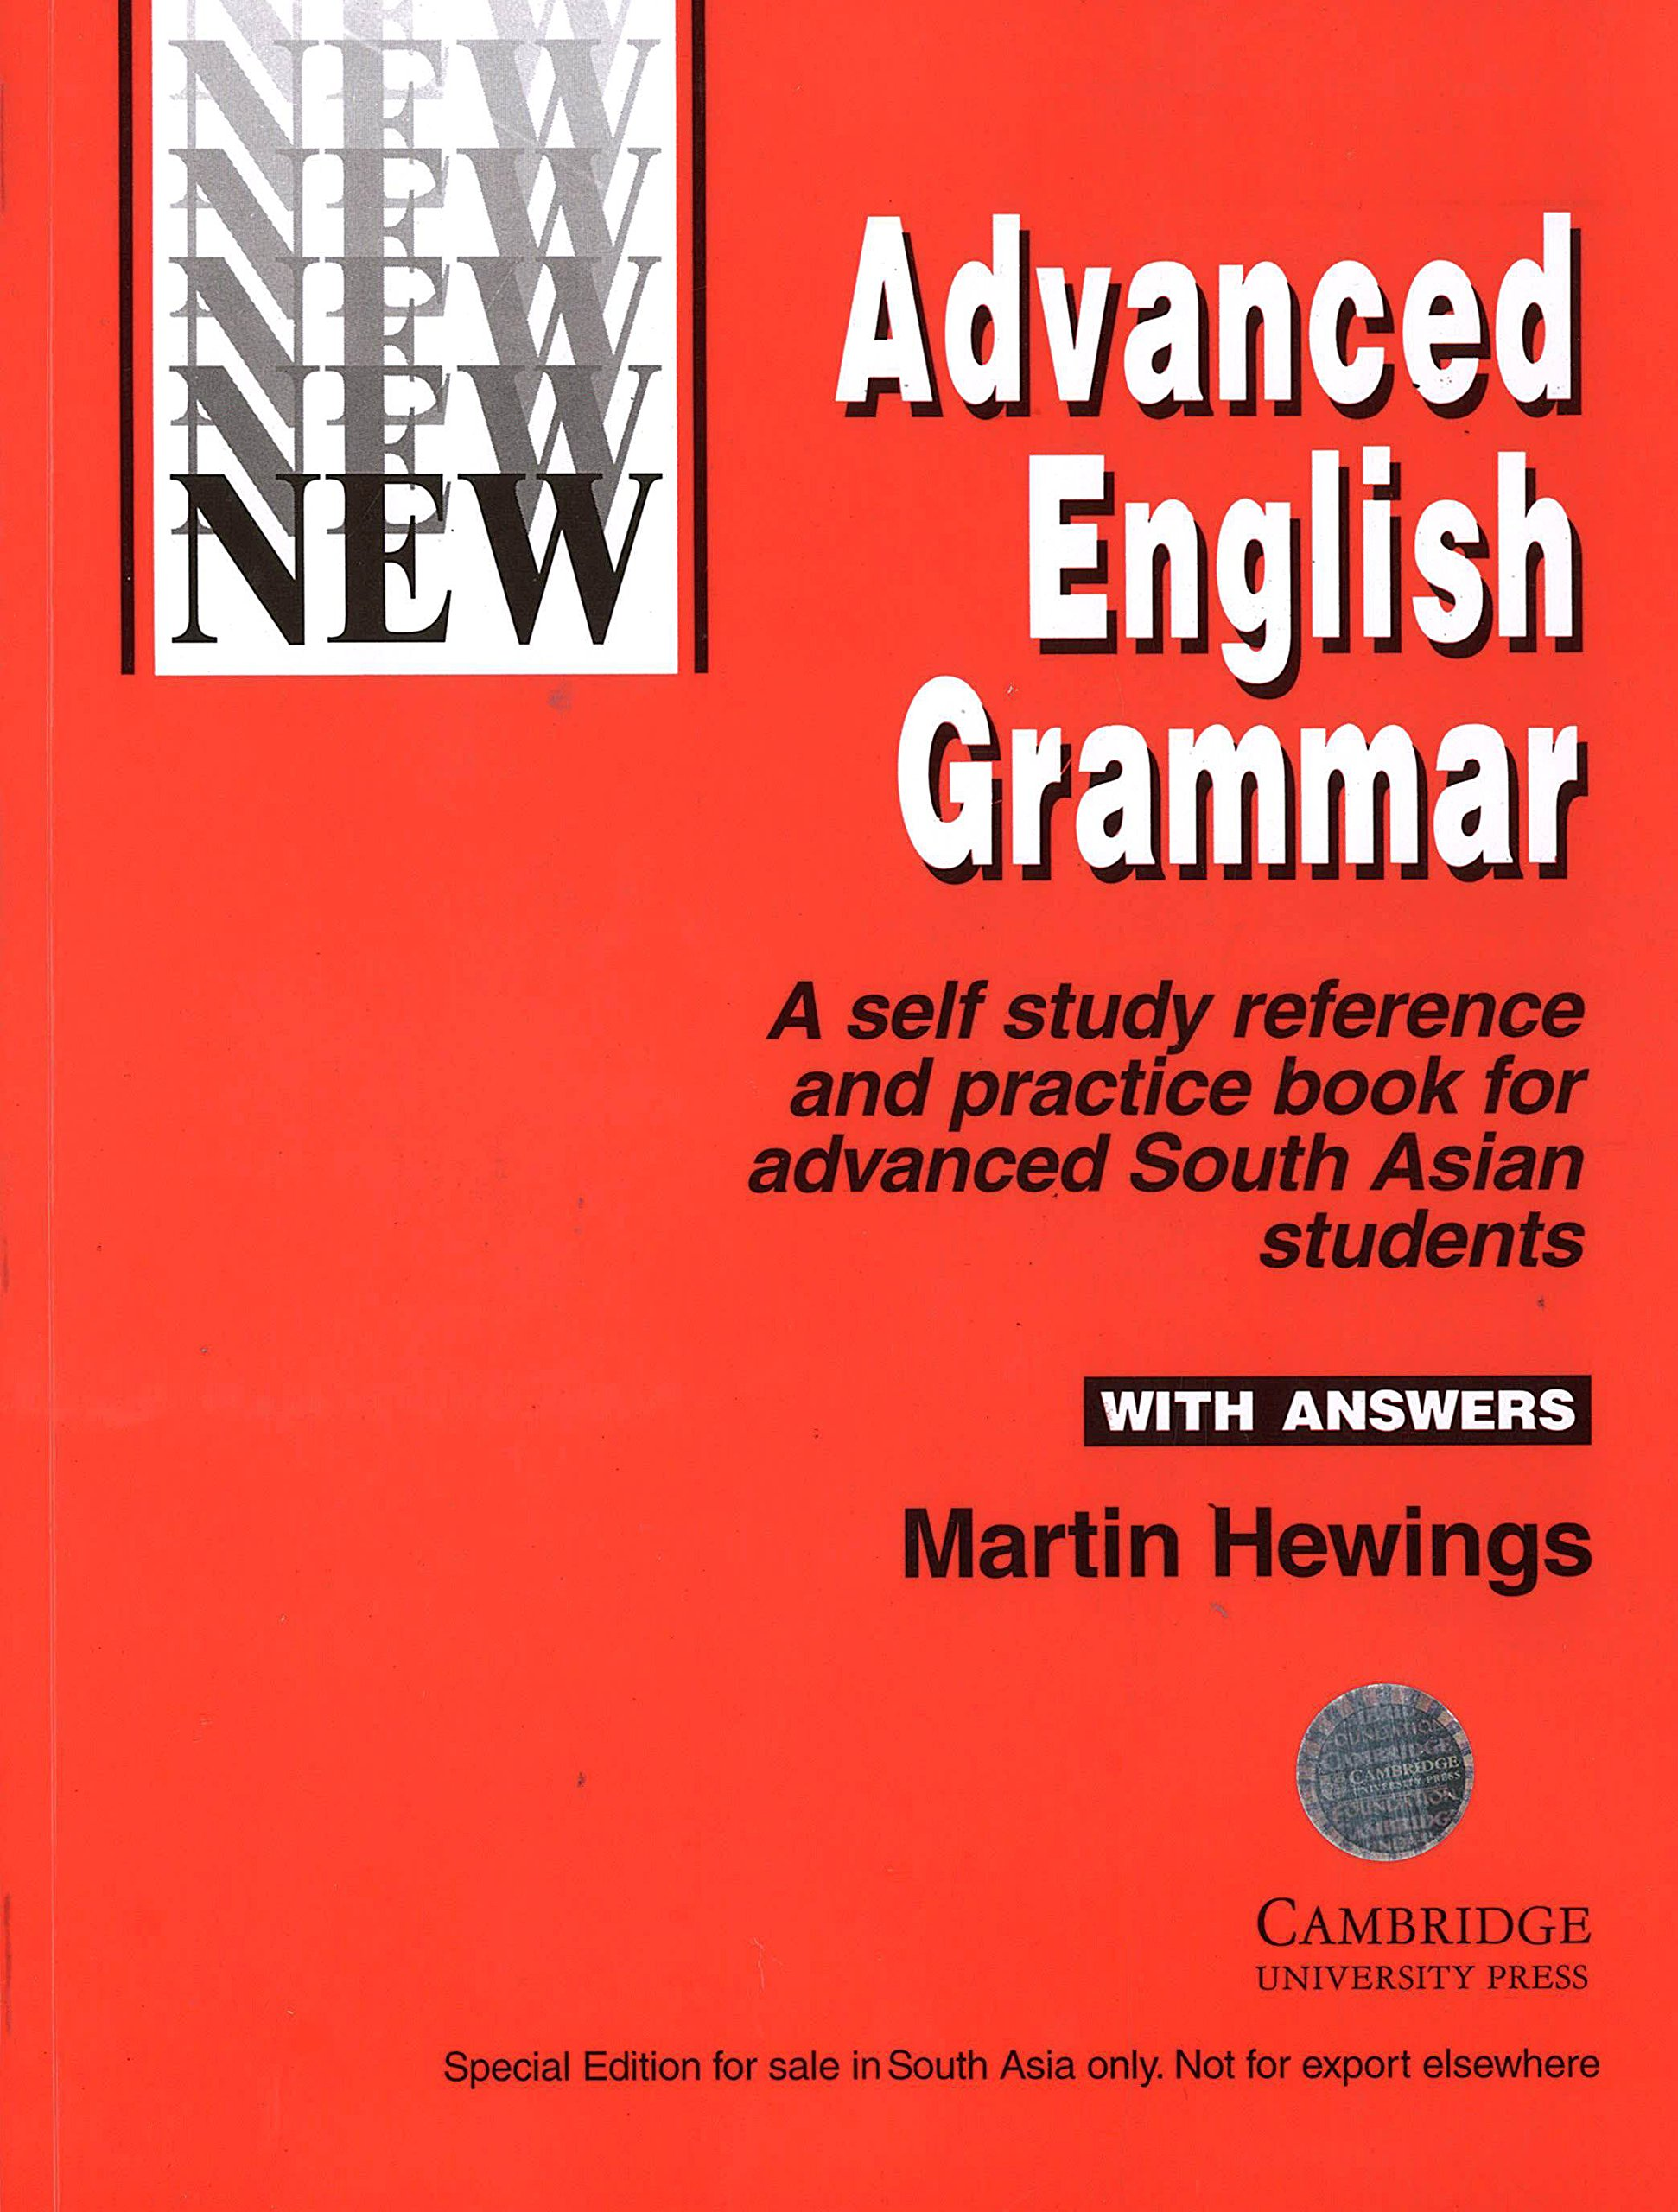 Buy advanced english grammar with answers book online at low prices in india advanced english grammar with answers reviews ratings amazon in